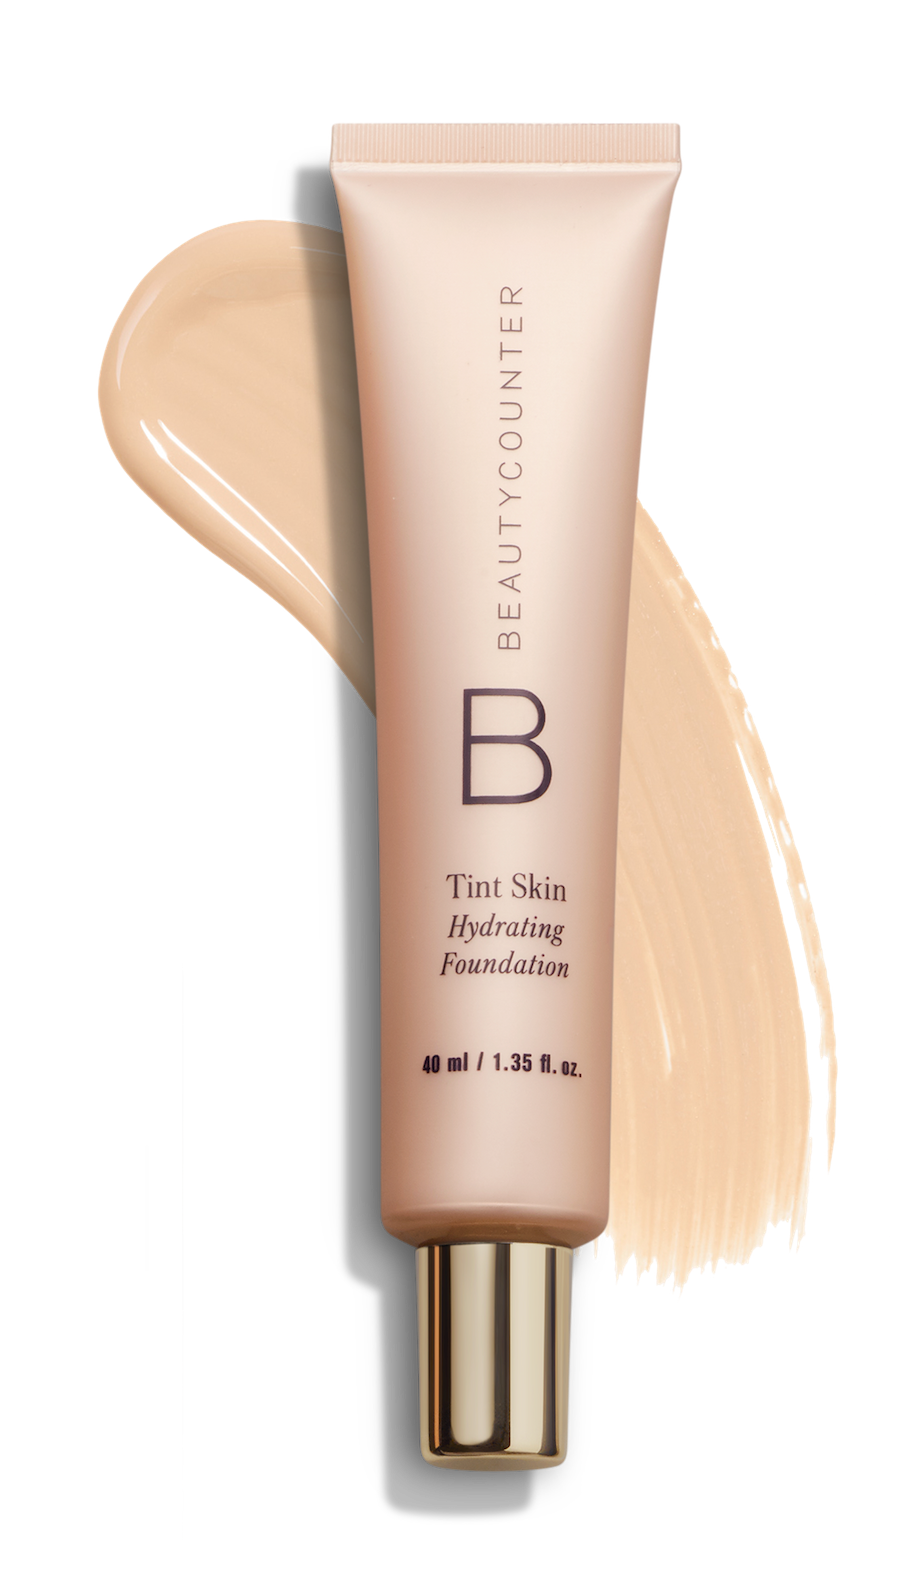 Beauty Counter tint skin foundation Beauty Products The Wardrobe Consultant